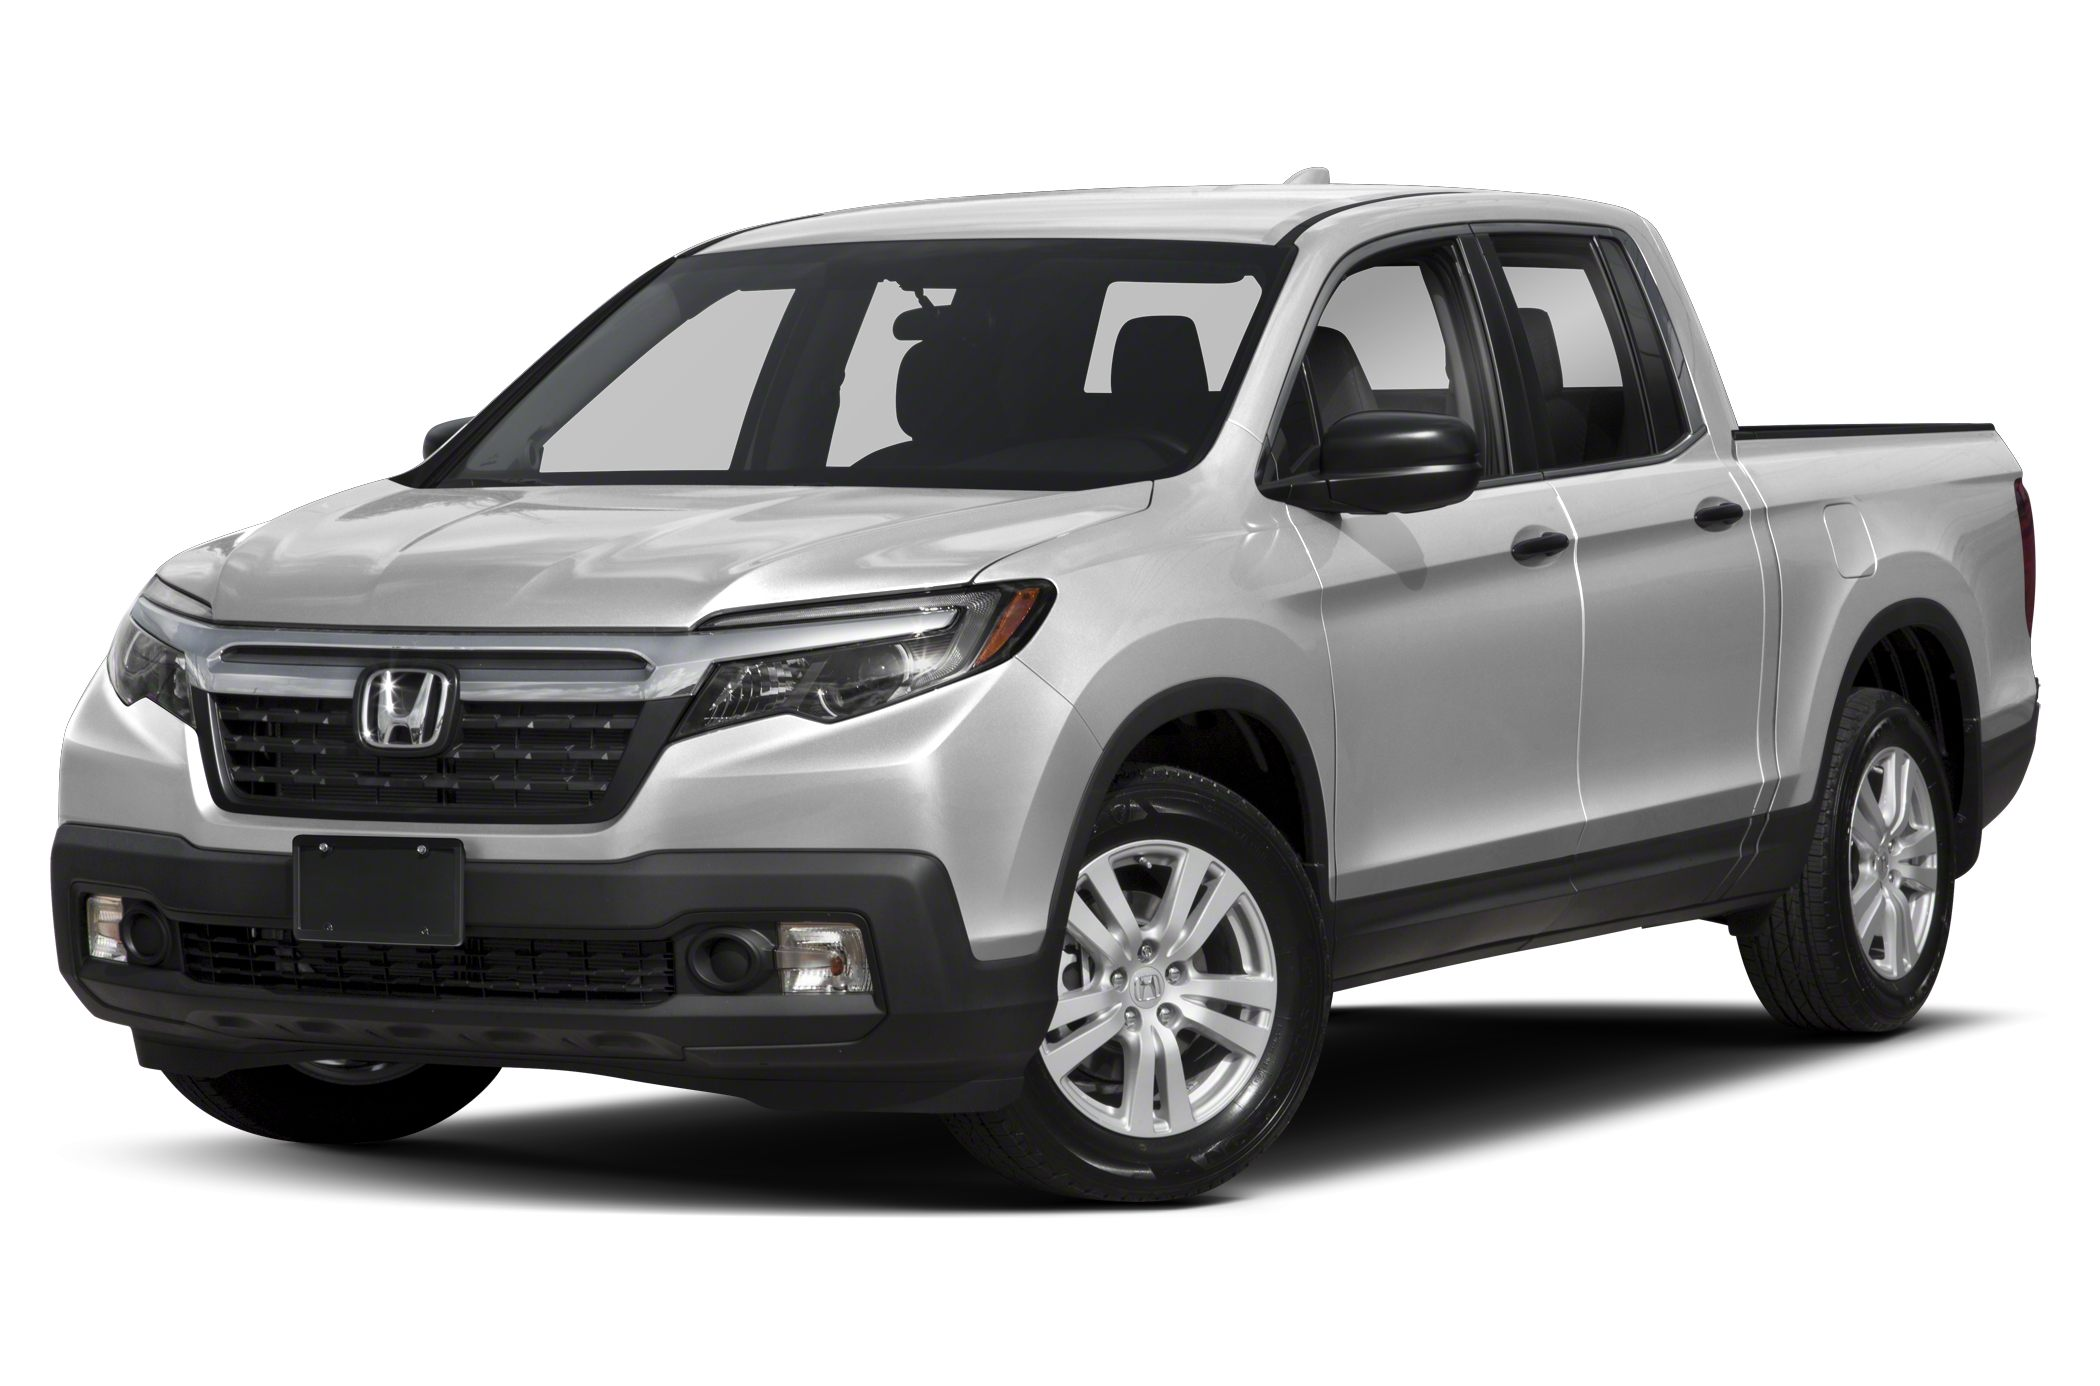 Honda, Acura recall Ridgeline, Accord, MDX, TLX for various fuel pump issues